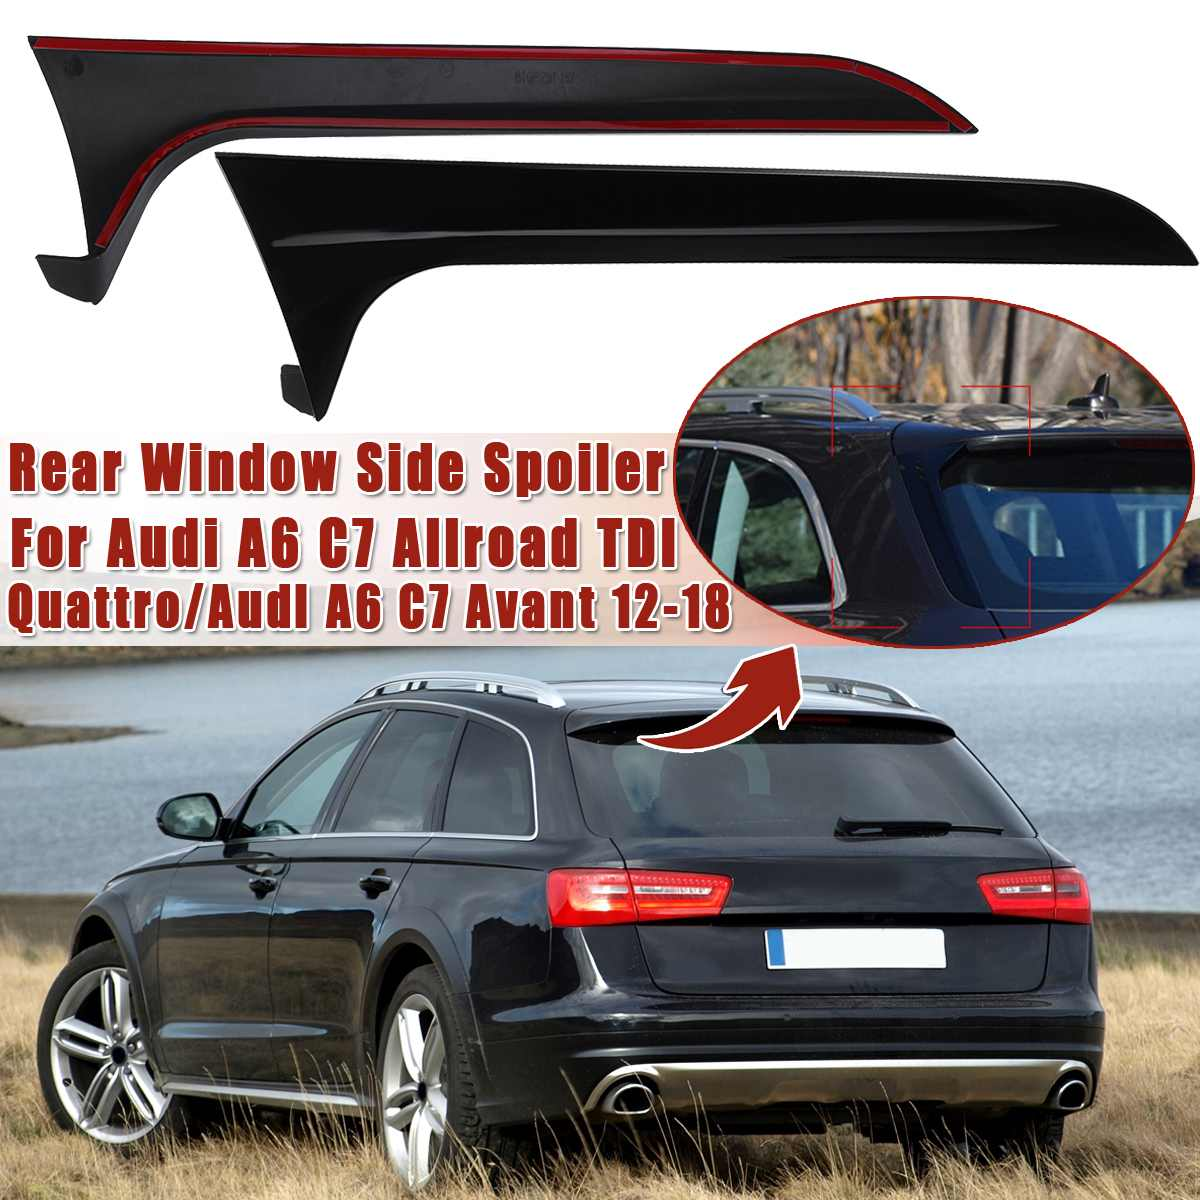 Rear Behind Window Spoiler Side Strip Cover Trim Exterior Refit Kit Fit  For Audi A6 C7 Allroad TDI Quattro/for Avant 2012 2018|Car Stickers| |  - title=